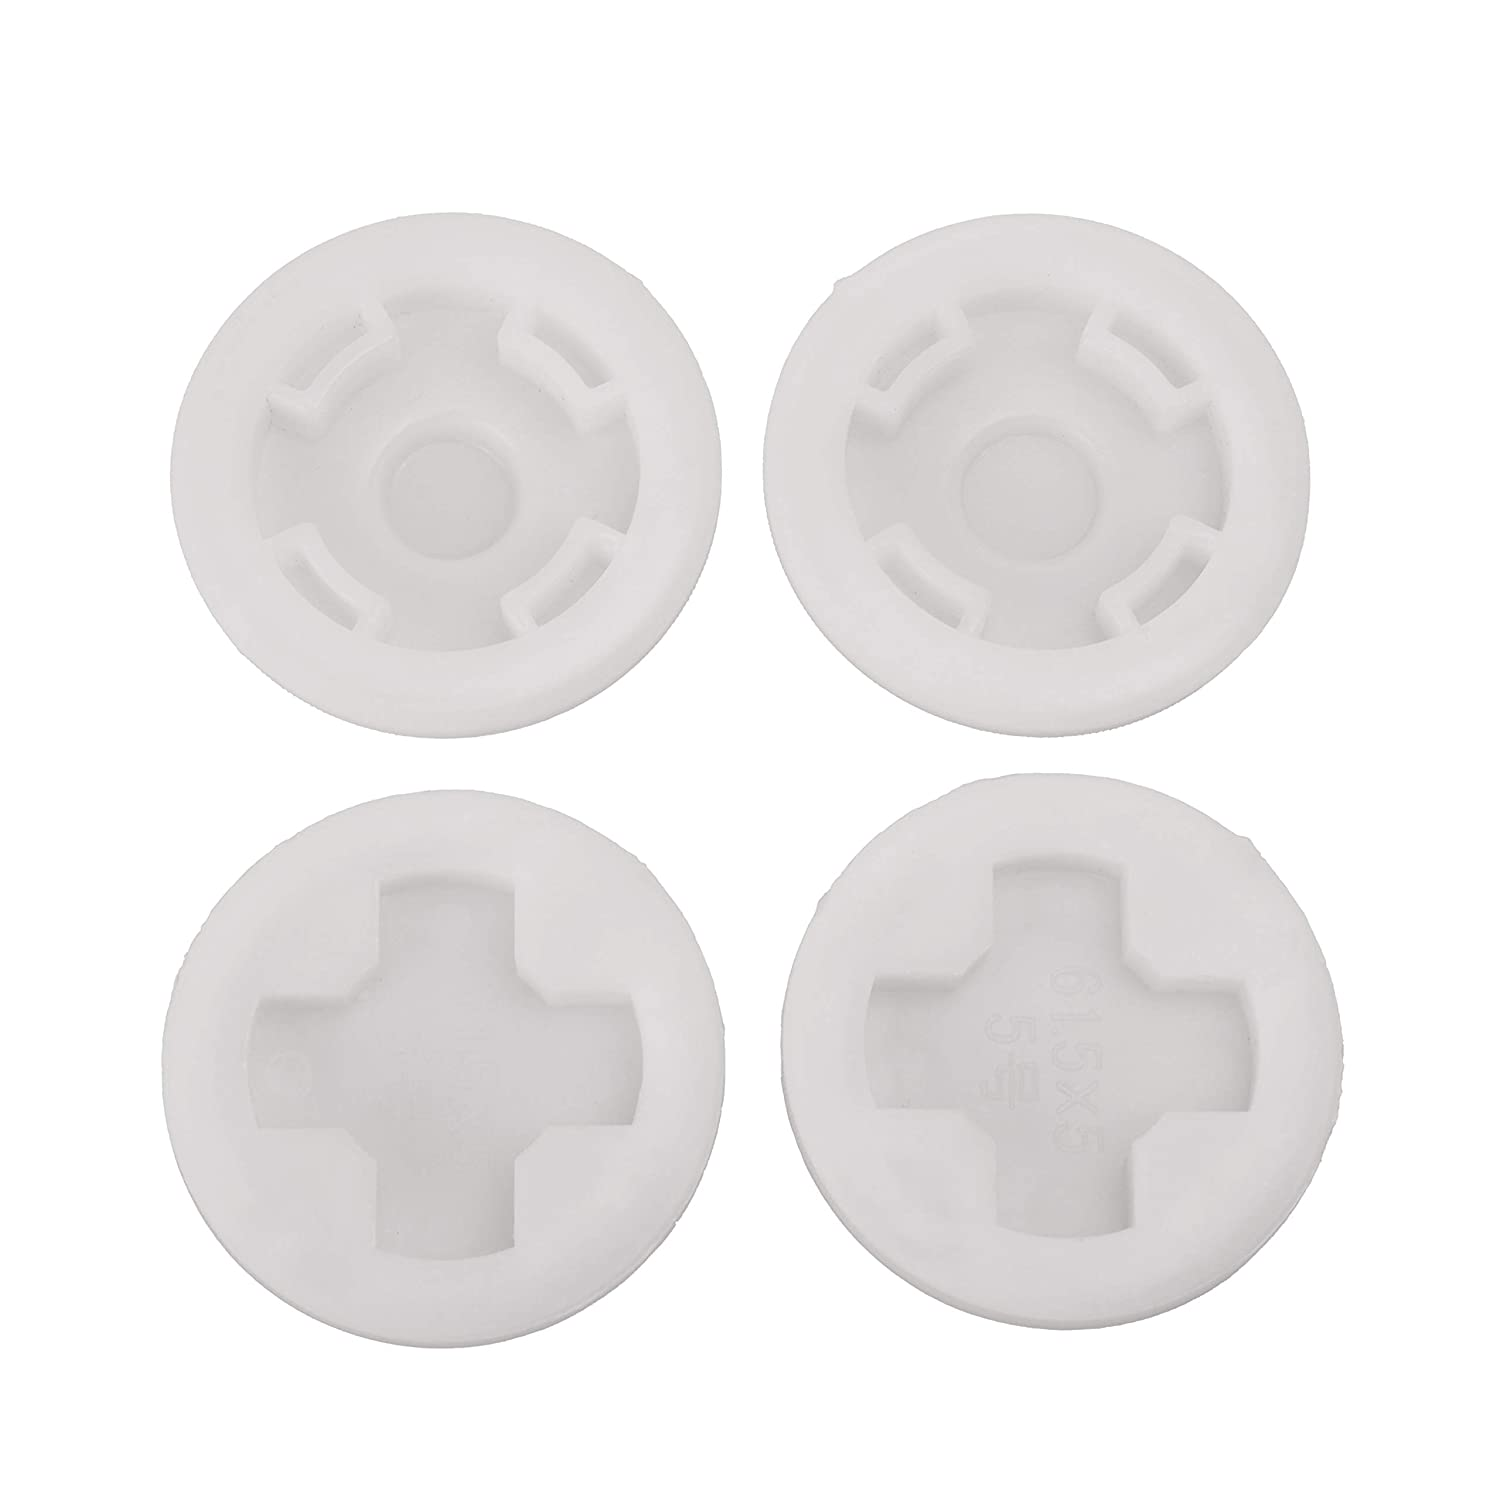 JAYGOP 4 Pack Combo 2 inch Bung Cap with 2 Buttress Coarse and 2 NPT Fine Thread with Gasket for 55 Gallon Plastic Barrel Drum lid